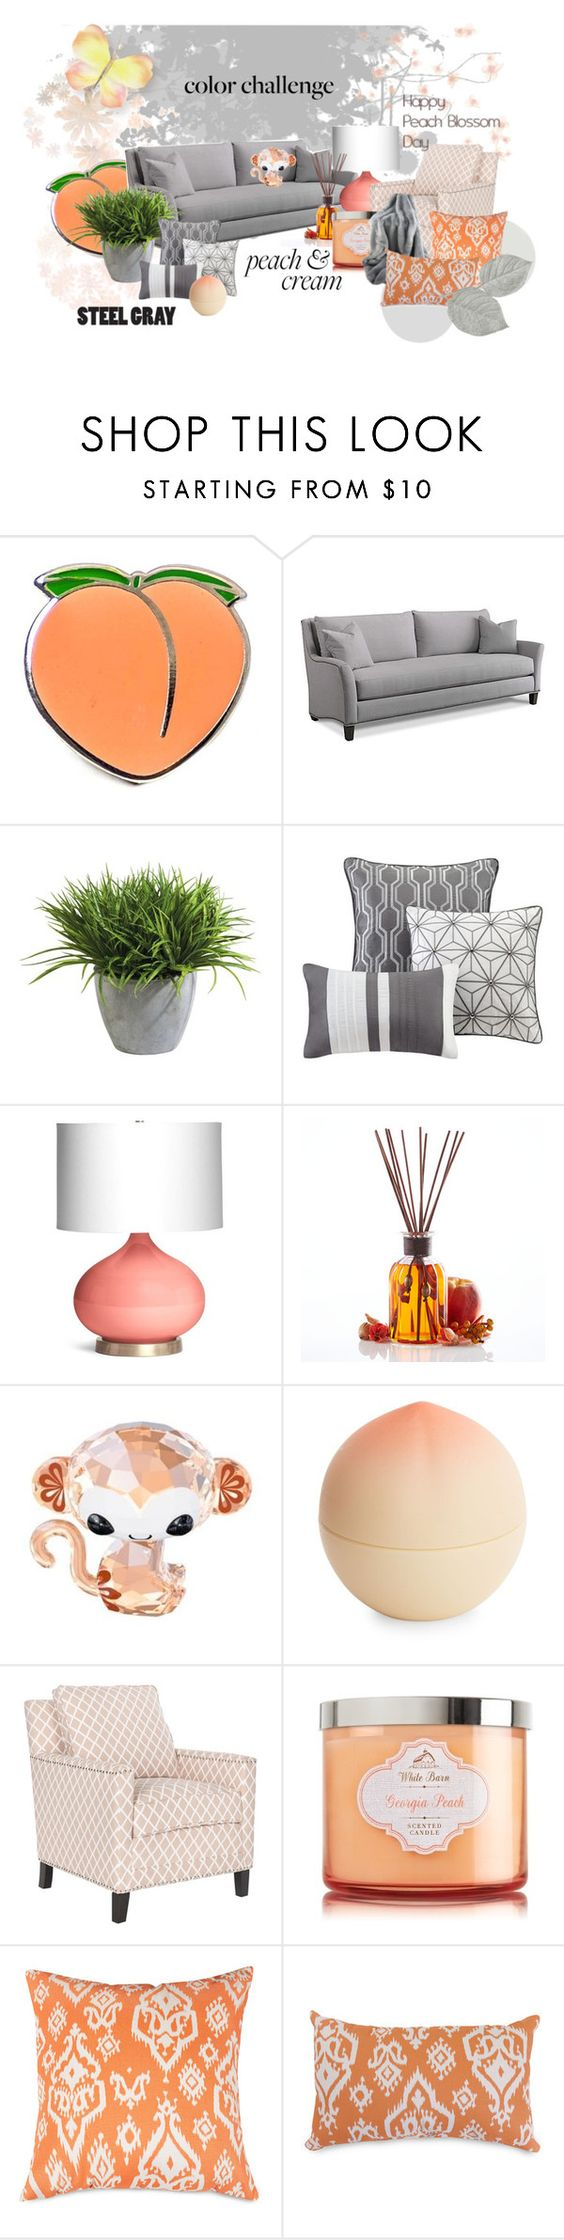 """""""Peach and Gray"""" by rach-leejo ❤ liked on Polyvore featuring interior, interiors, interior design, home, home decor, interior decorating, PINTRILL, Ethan Allen, Madison Park and Emporium Home"""